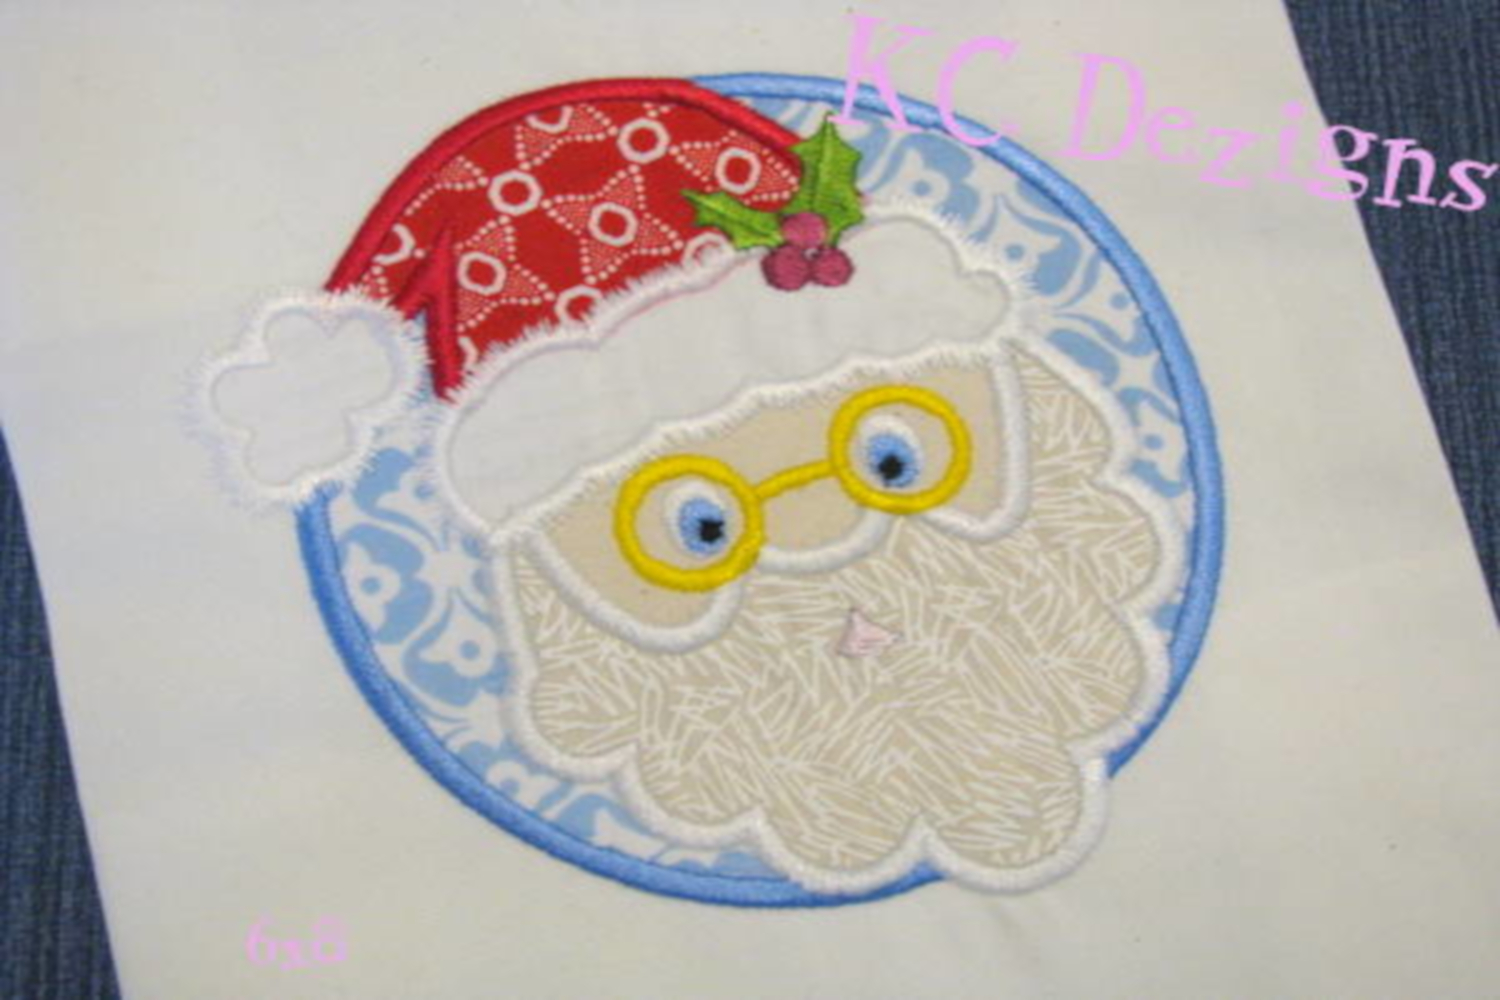 Santa Circle Machine Applique Embroidery Design example image 2